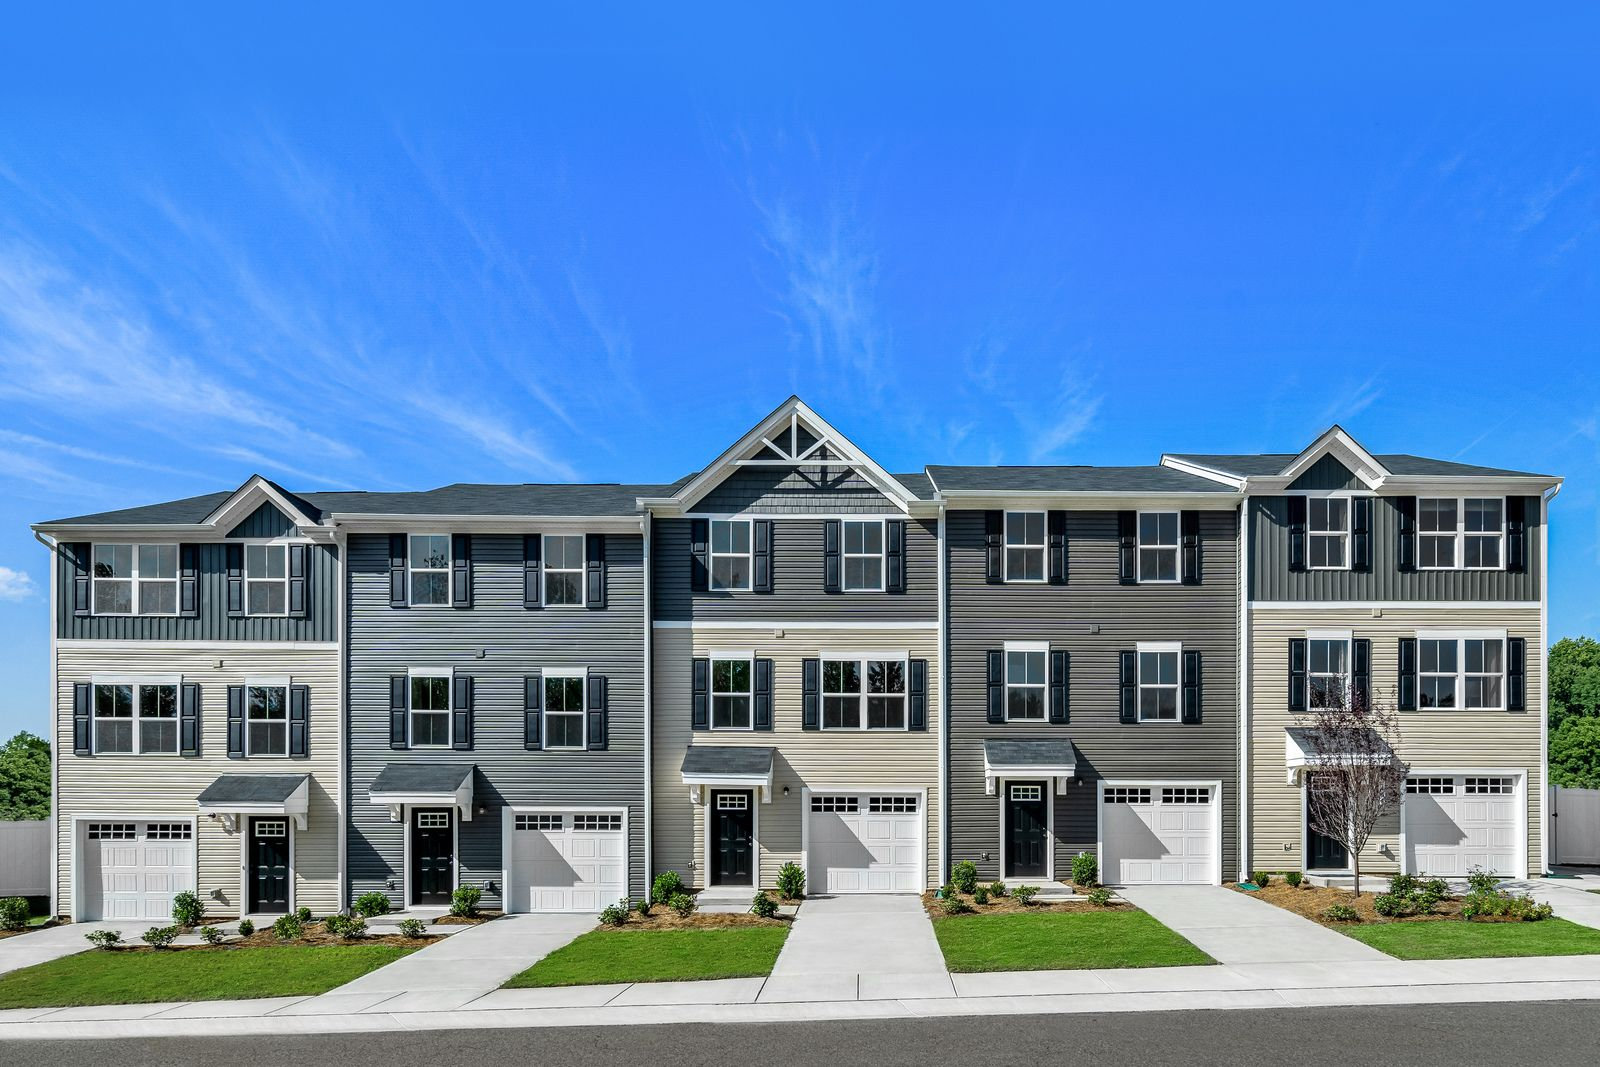 The most affordable new homes in the area offering a low-maintenance lifestyle. From the $180s:Live minutes to Travelers Rest and walking distance to the Swamp Rabbit Trail. Join the VIP List for exclusive offers.